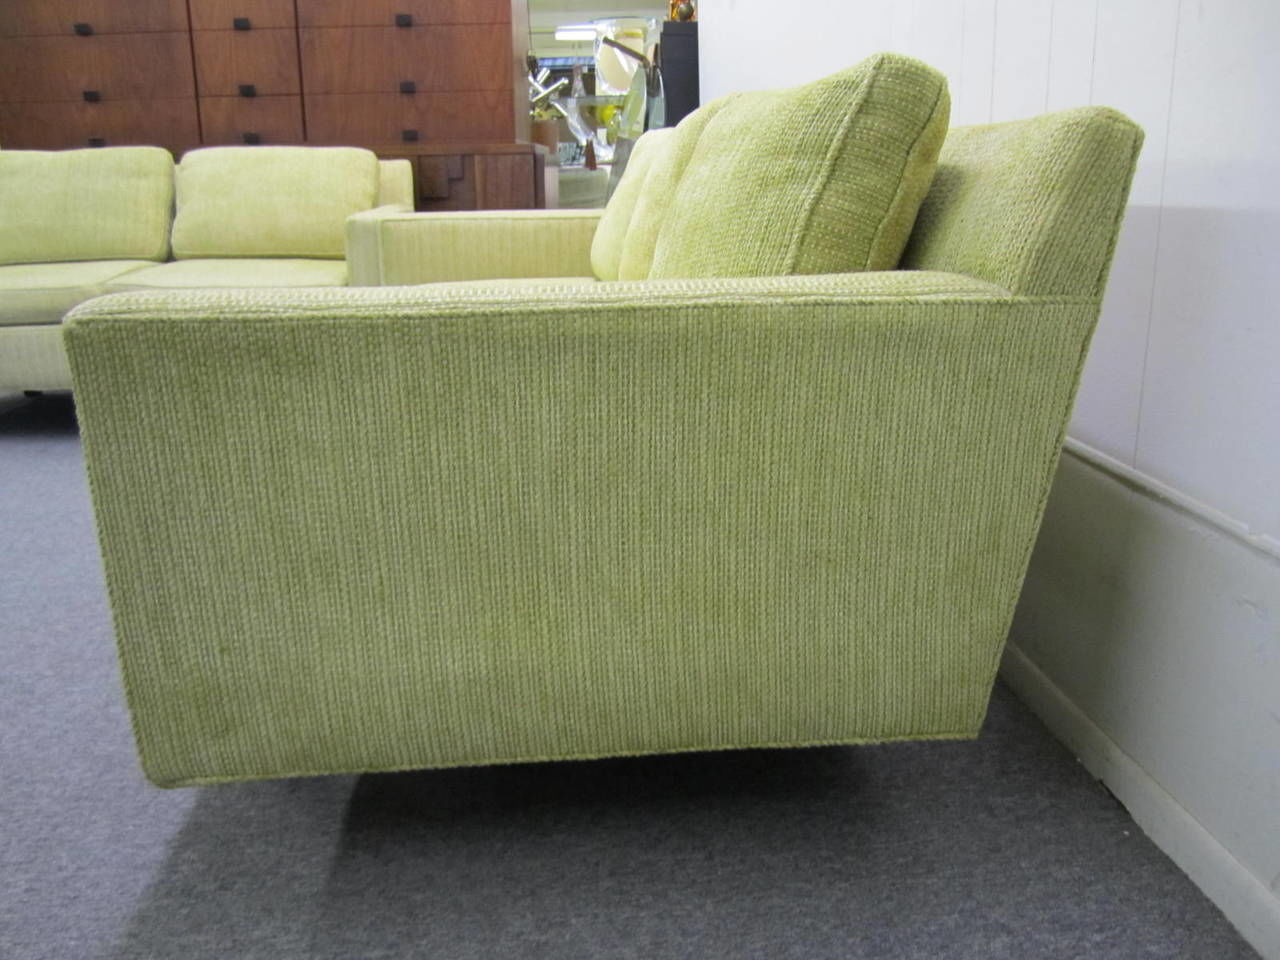 stylish three seater sofa gallery-Excellent Three Seater sofa Photo